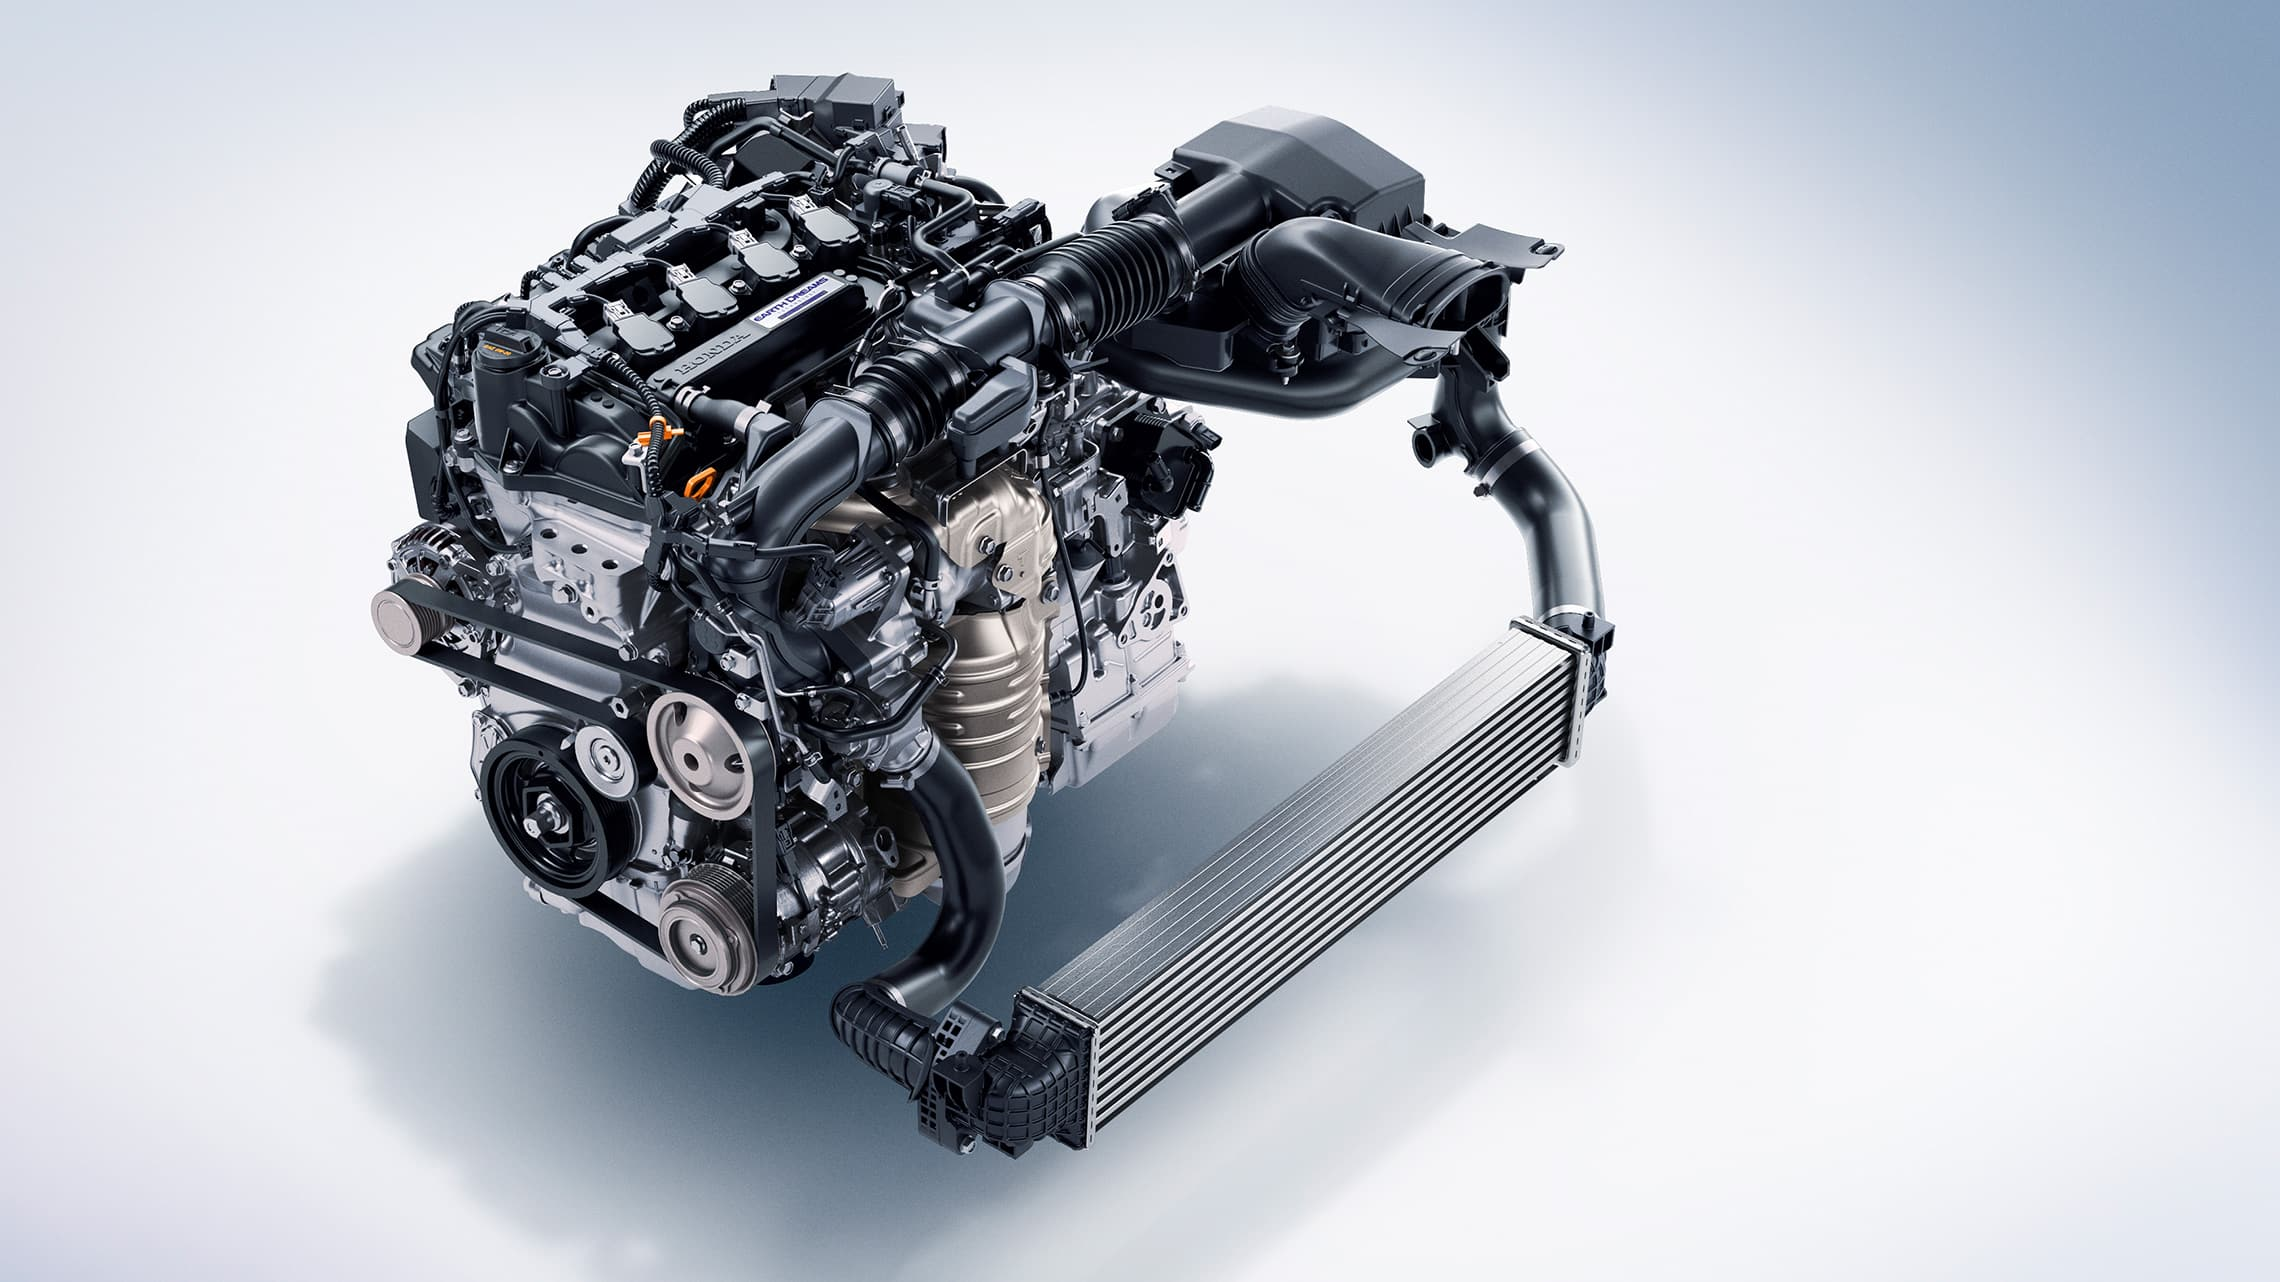 1.5-liter turbocharged engine detail on the 2021 Honda Accord.